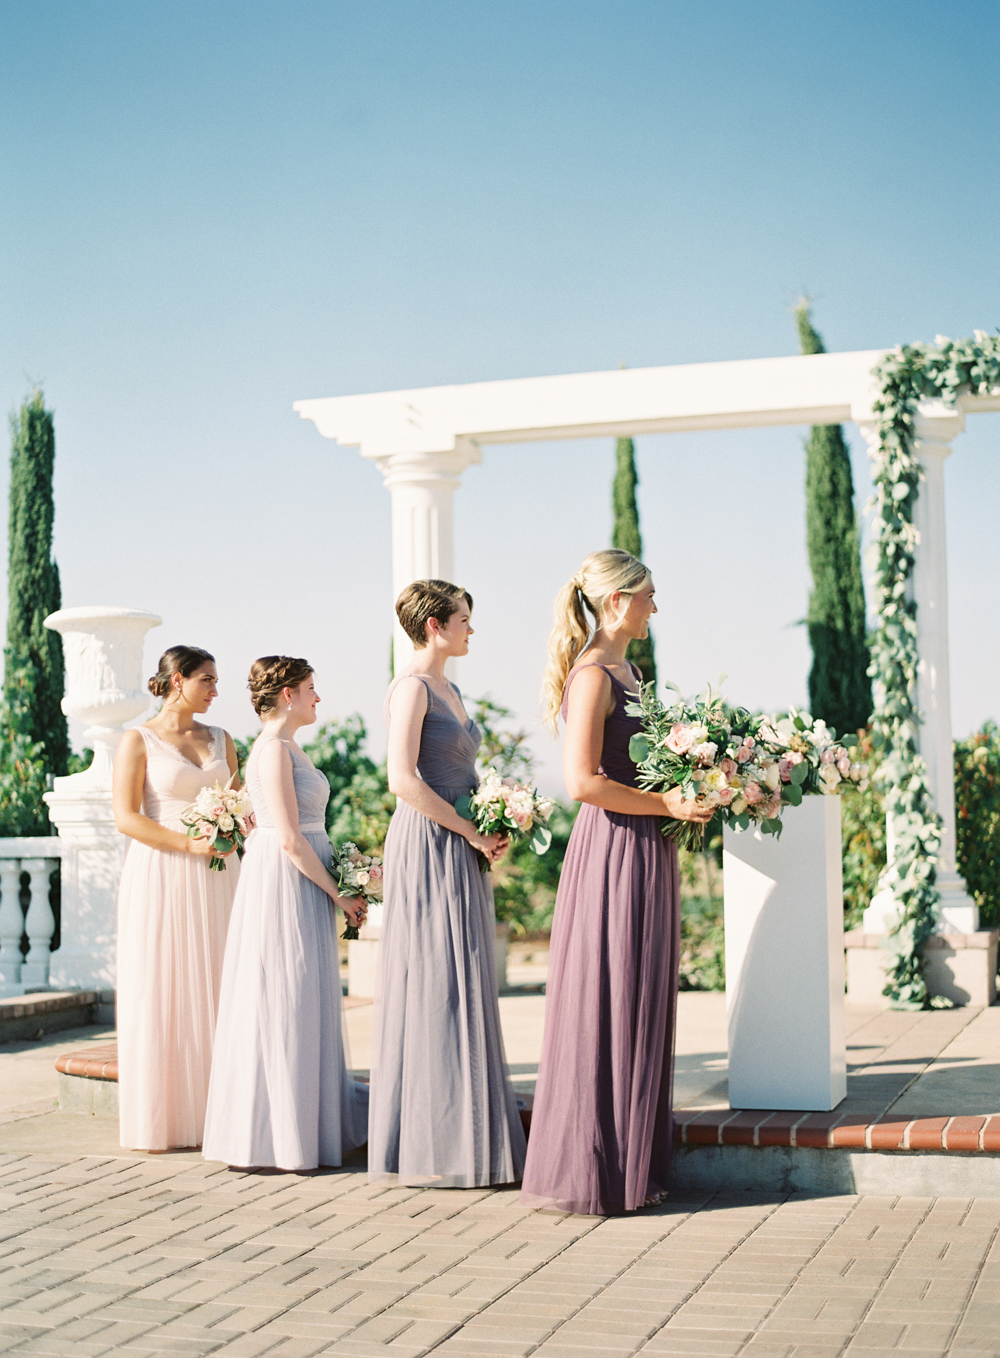 Lavender Blush bridesmaids dress BHLDN | Mount Palomar Winery Wedding | Blush and Lavender | San Diego wedding photographer | Temecula wedding photographer | Southern California film photographer | Whiskers and Willow Photography